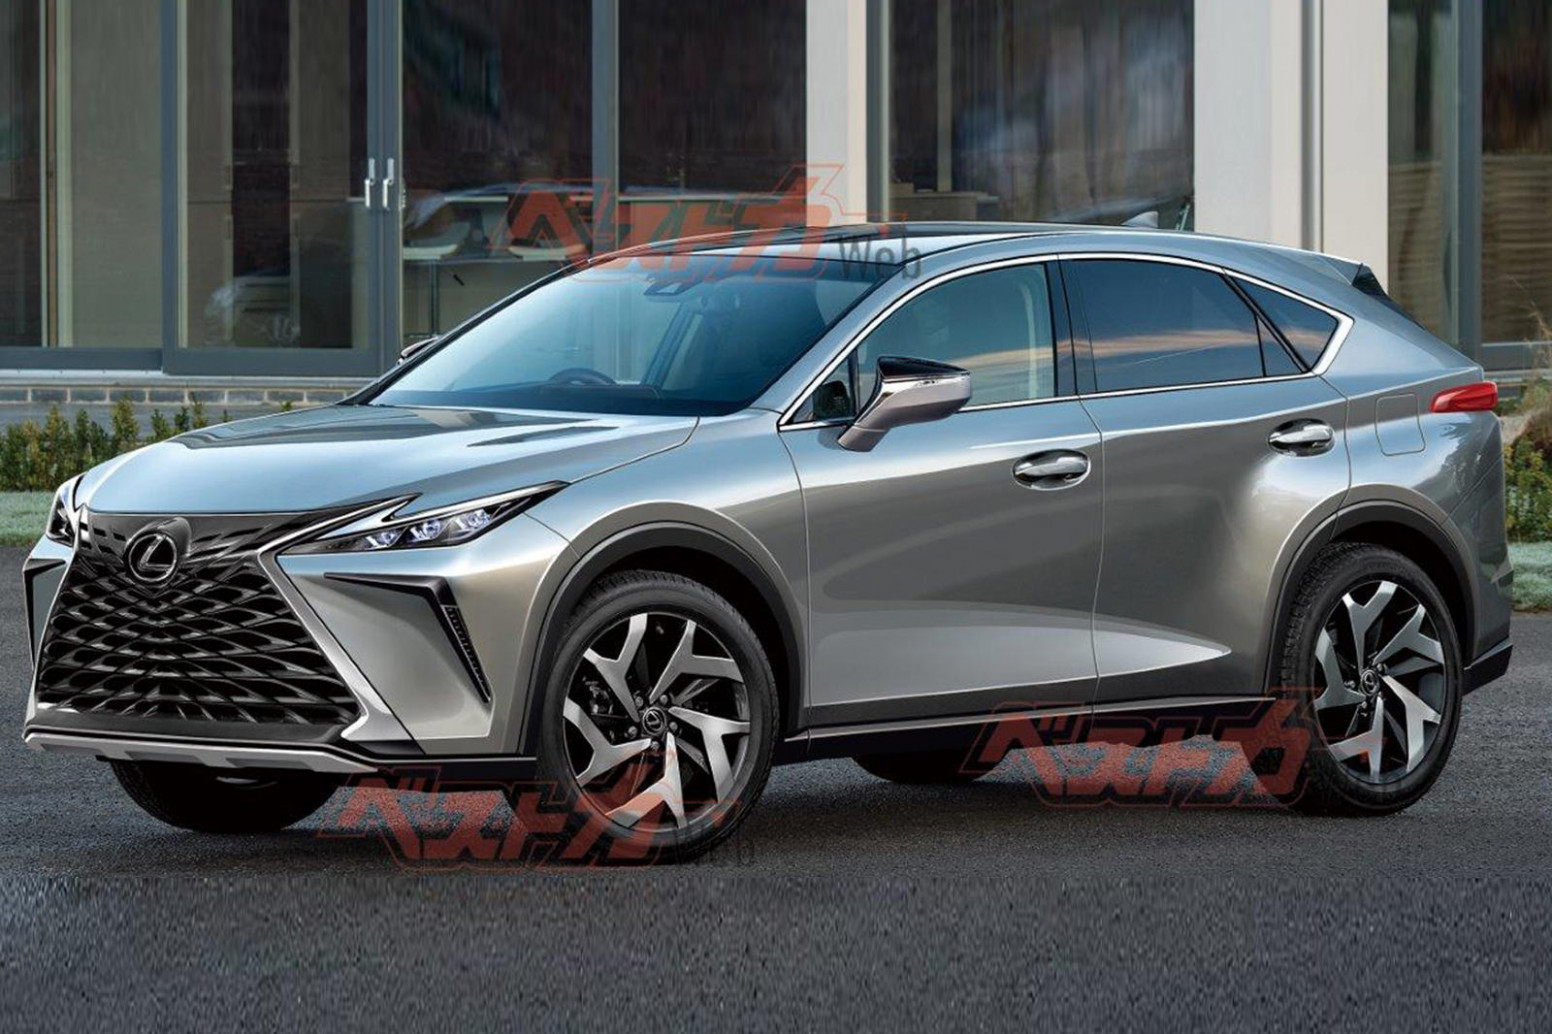 Redesign and Review Lexus Gx Body Style Change 2022